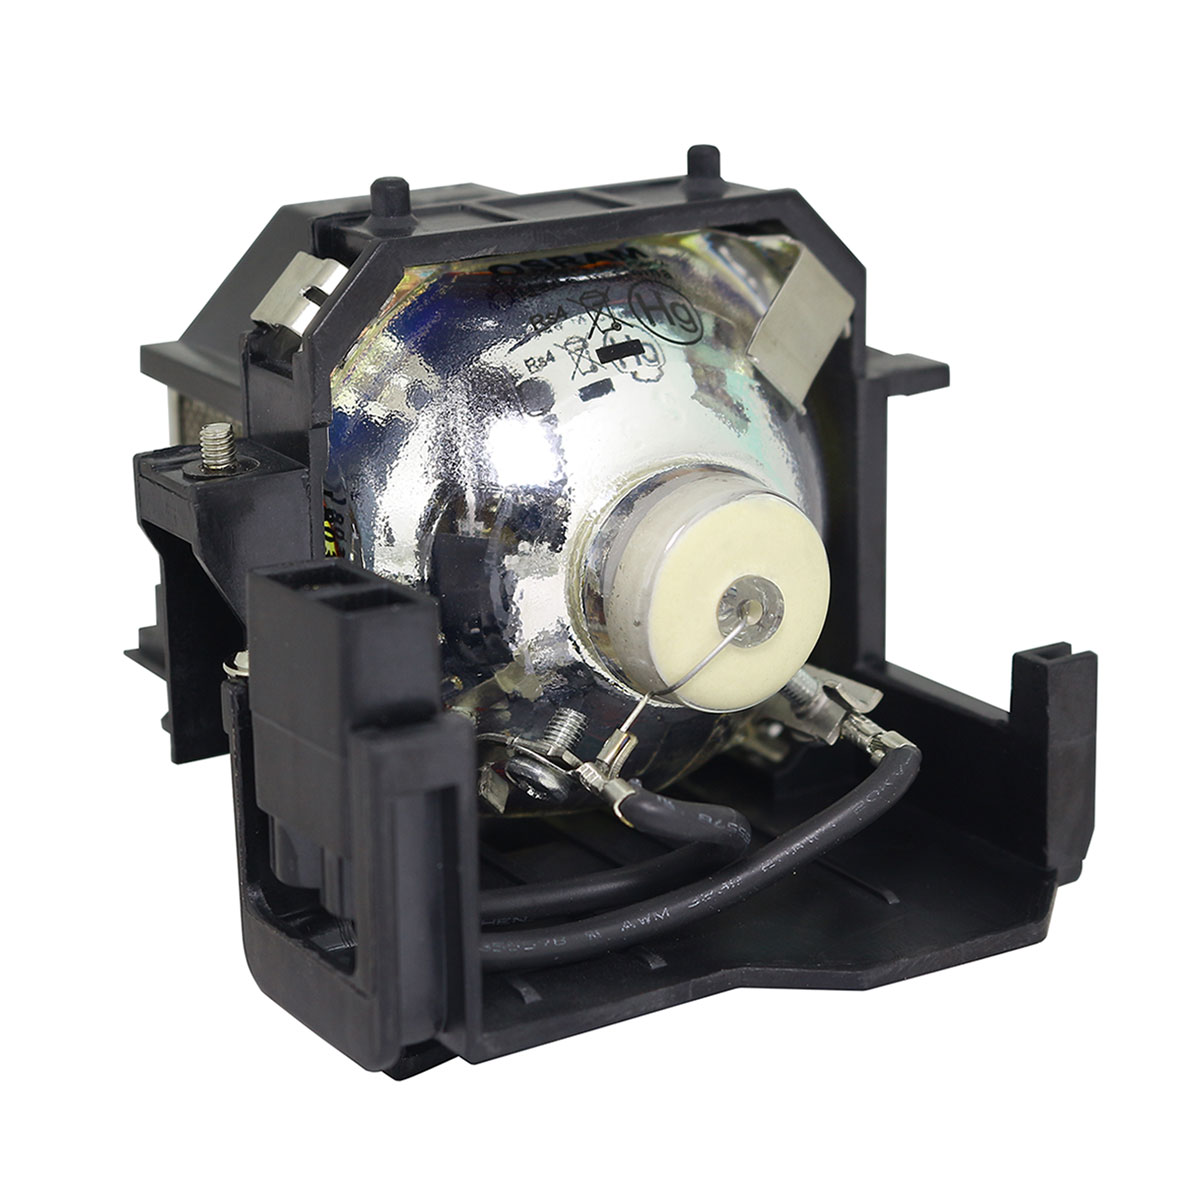 Original Osram Projector Lamp Replacement for Epson PowerLite W6 (Bulb Only) - image 3 de 5